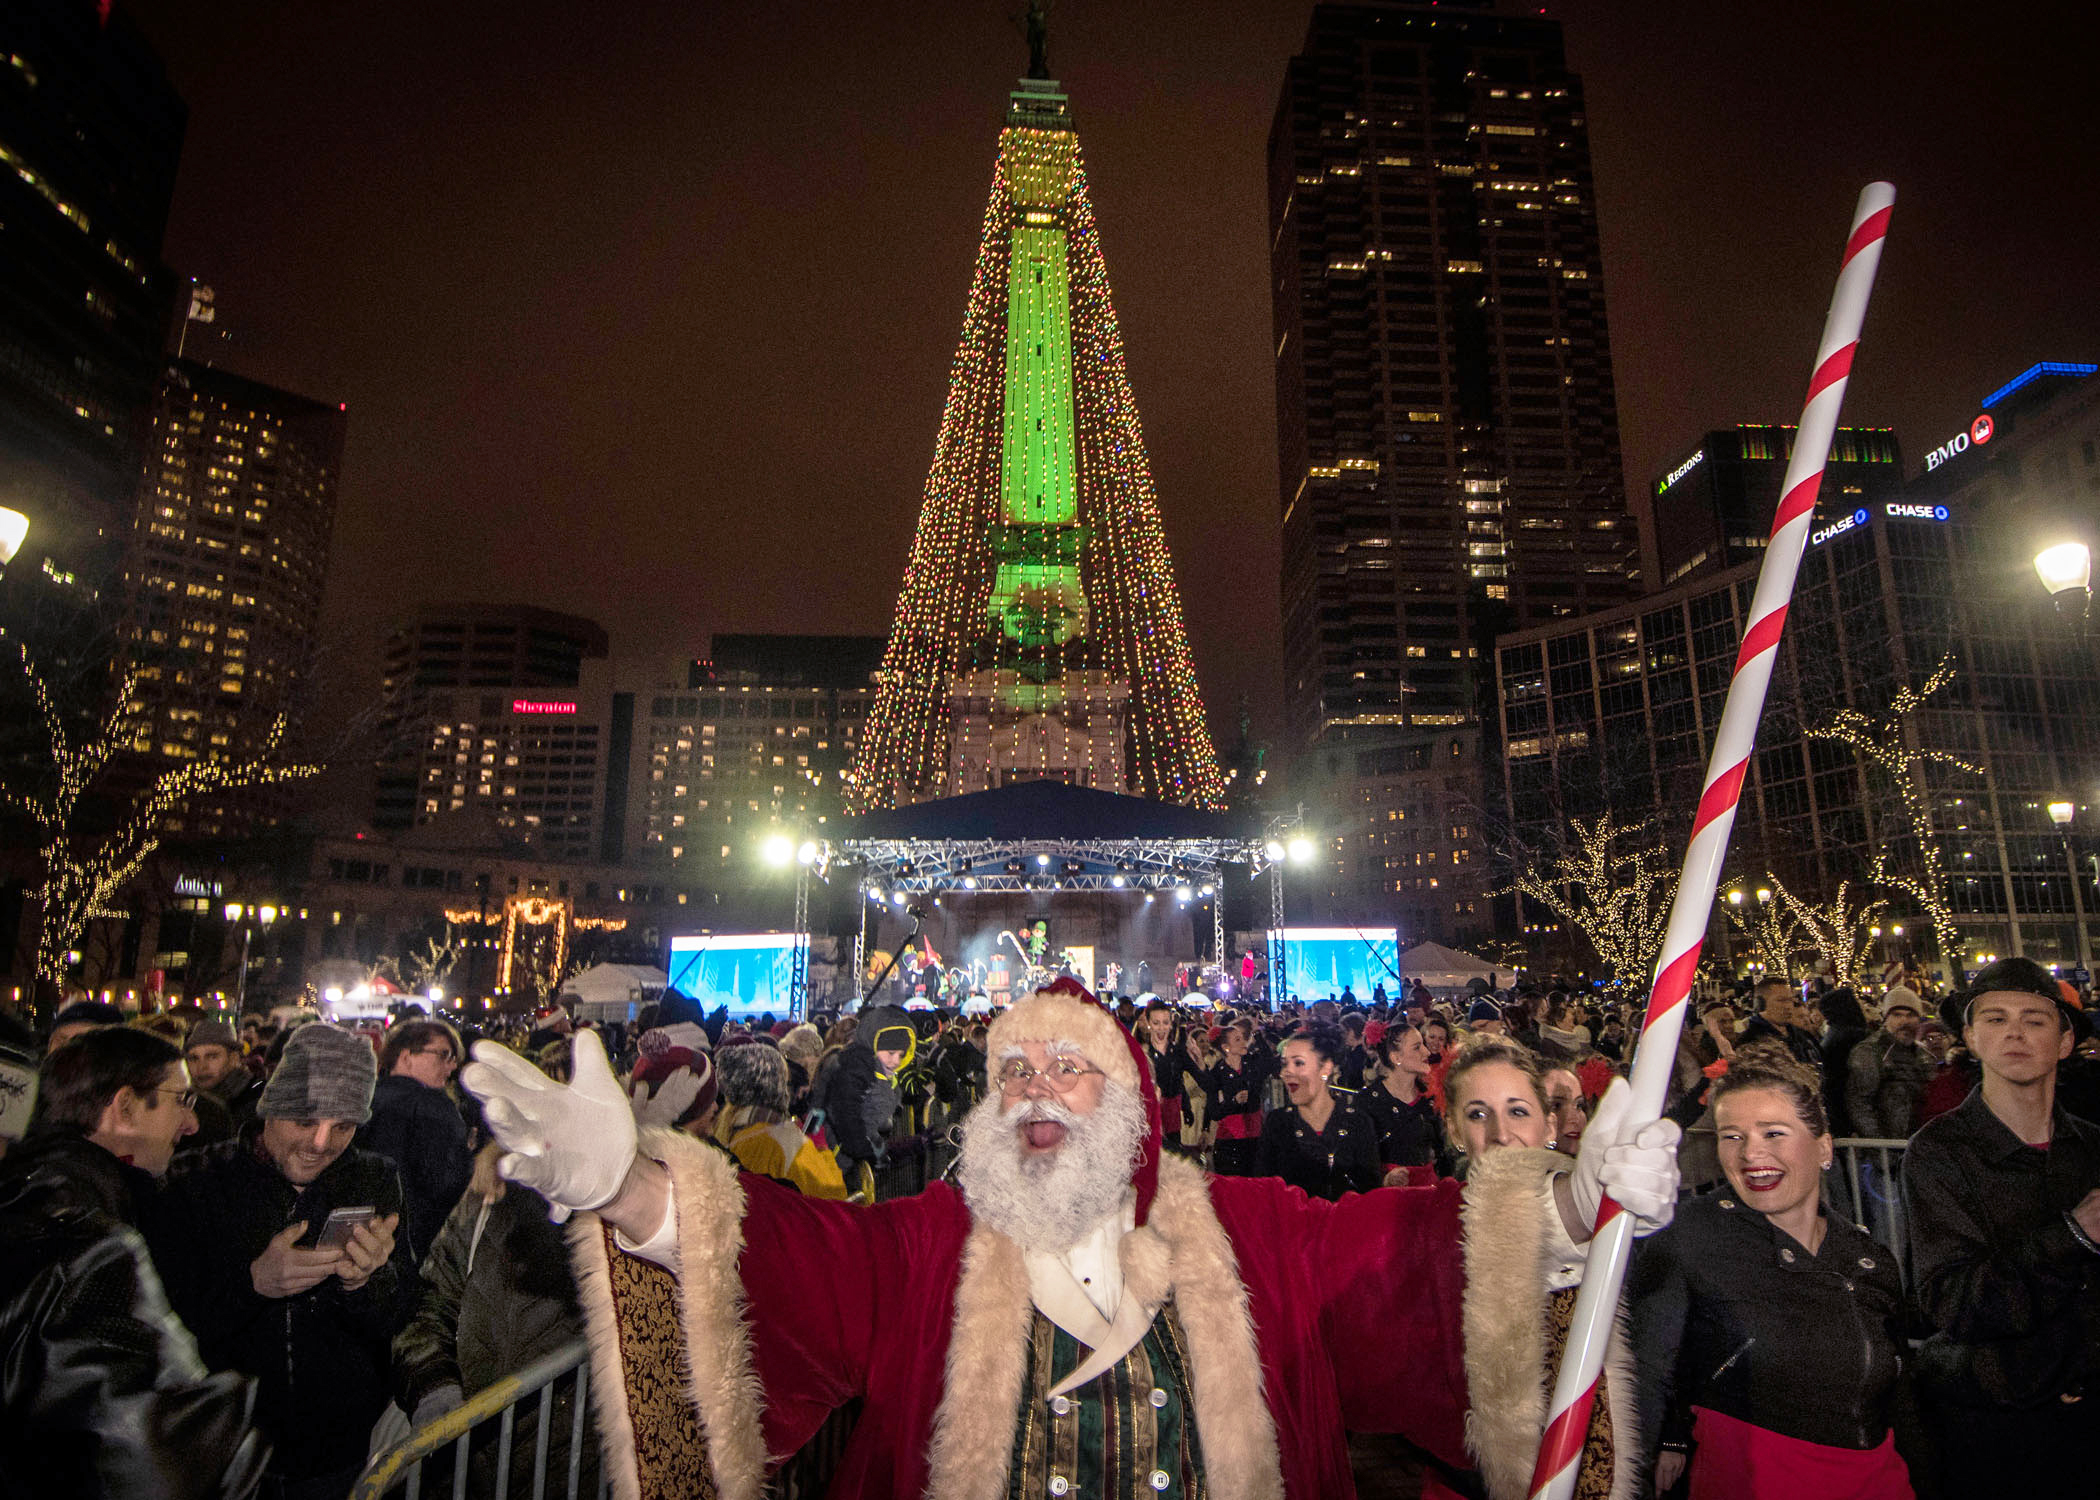 Avolites Kindles the Christmas Spirit at Indy's Circle of Lights